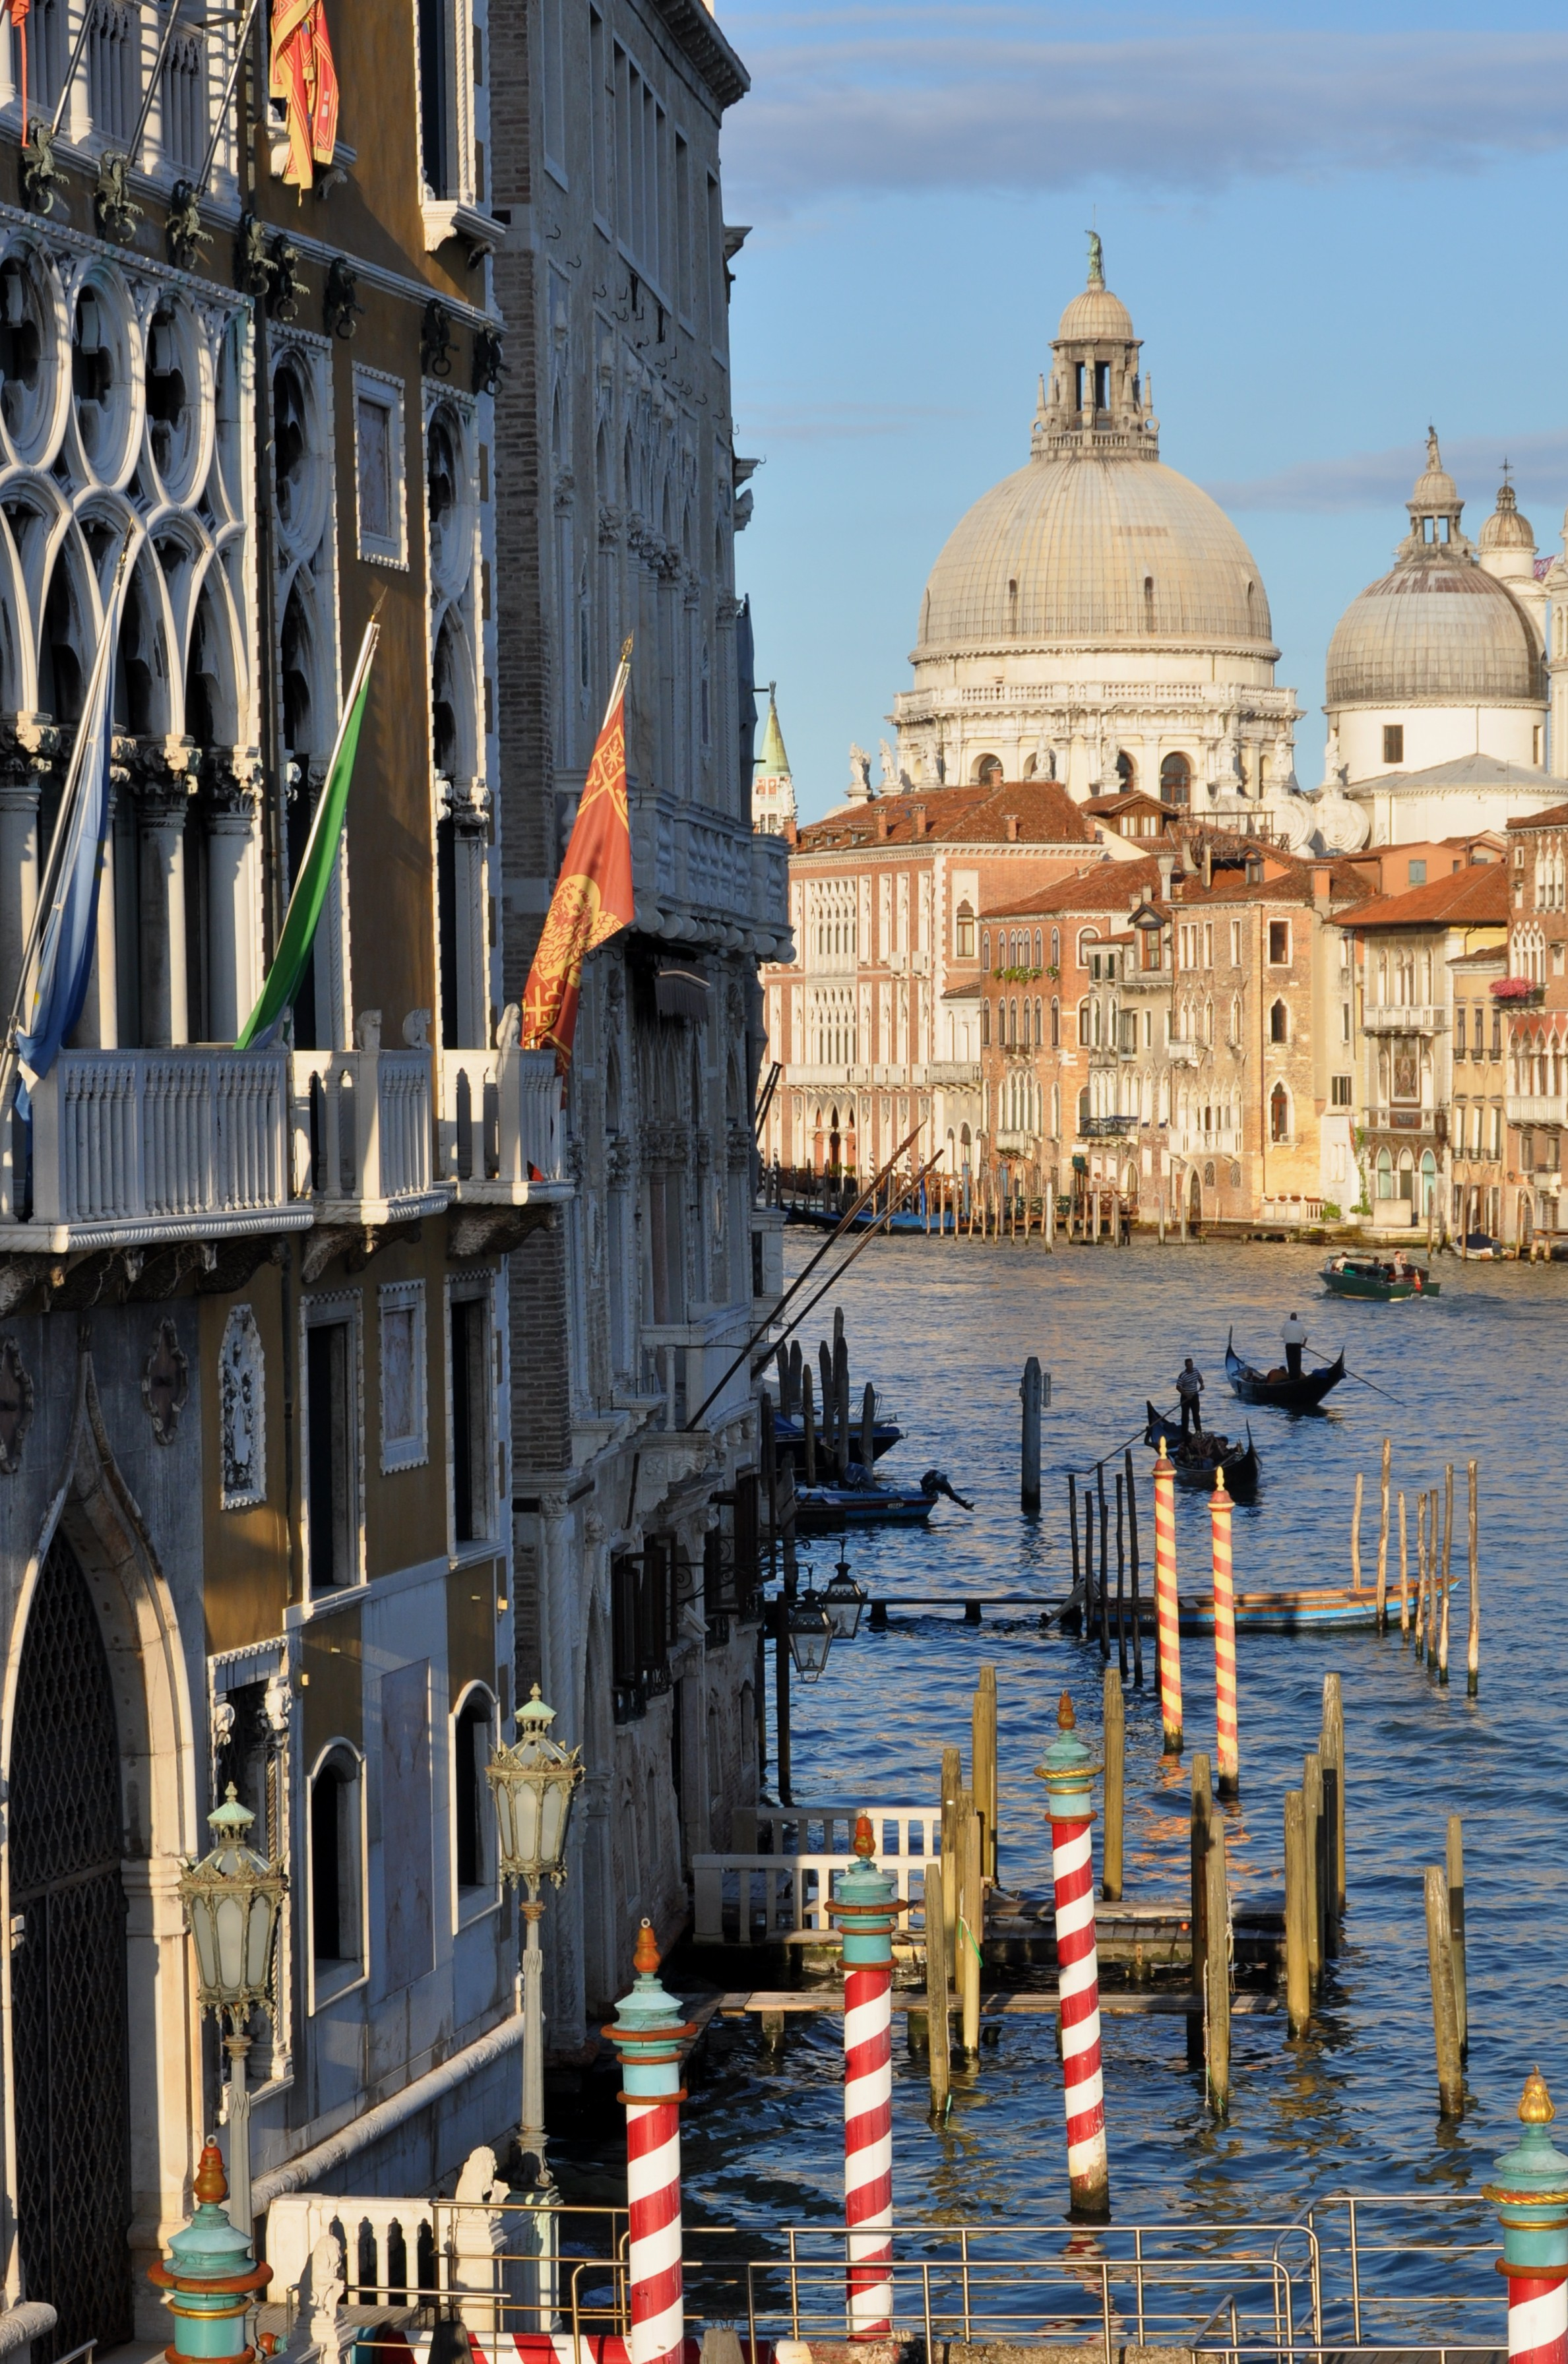 Venice Full Face Black Mirror Mask: Top 10 Things To Do In Venice, Italy